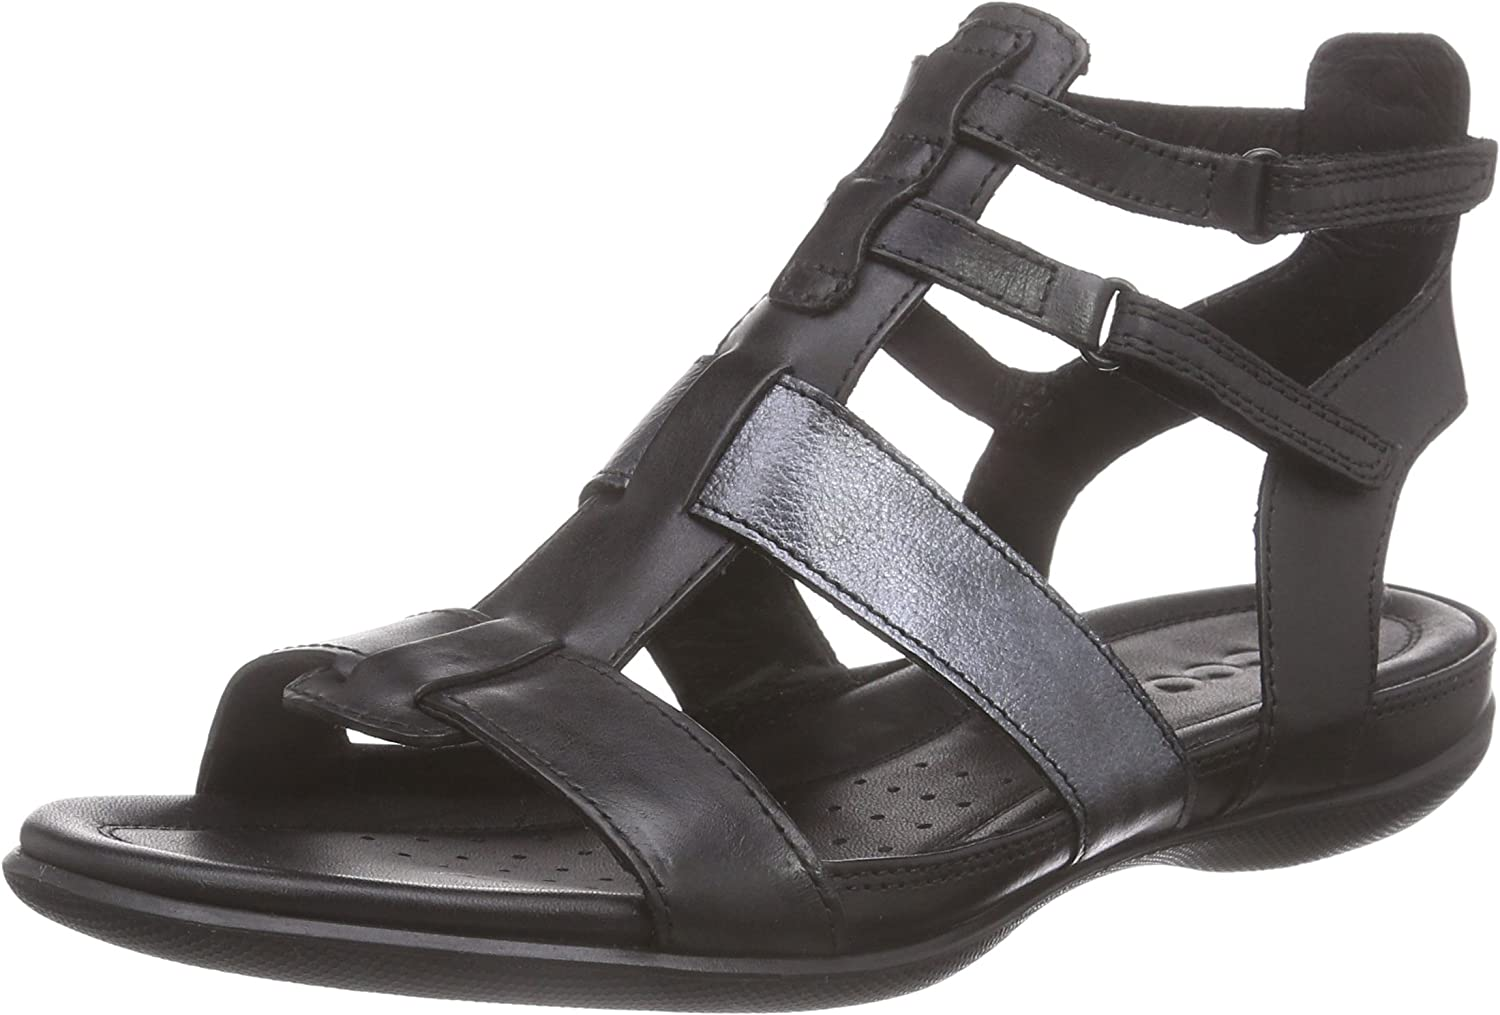 ECCO shoes Women's Flash Ankle Gladiator Sandal